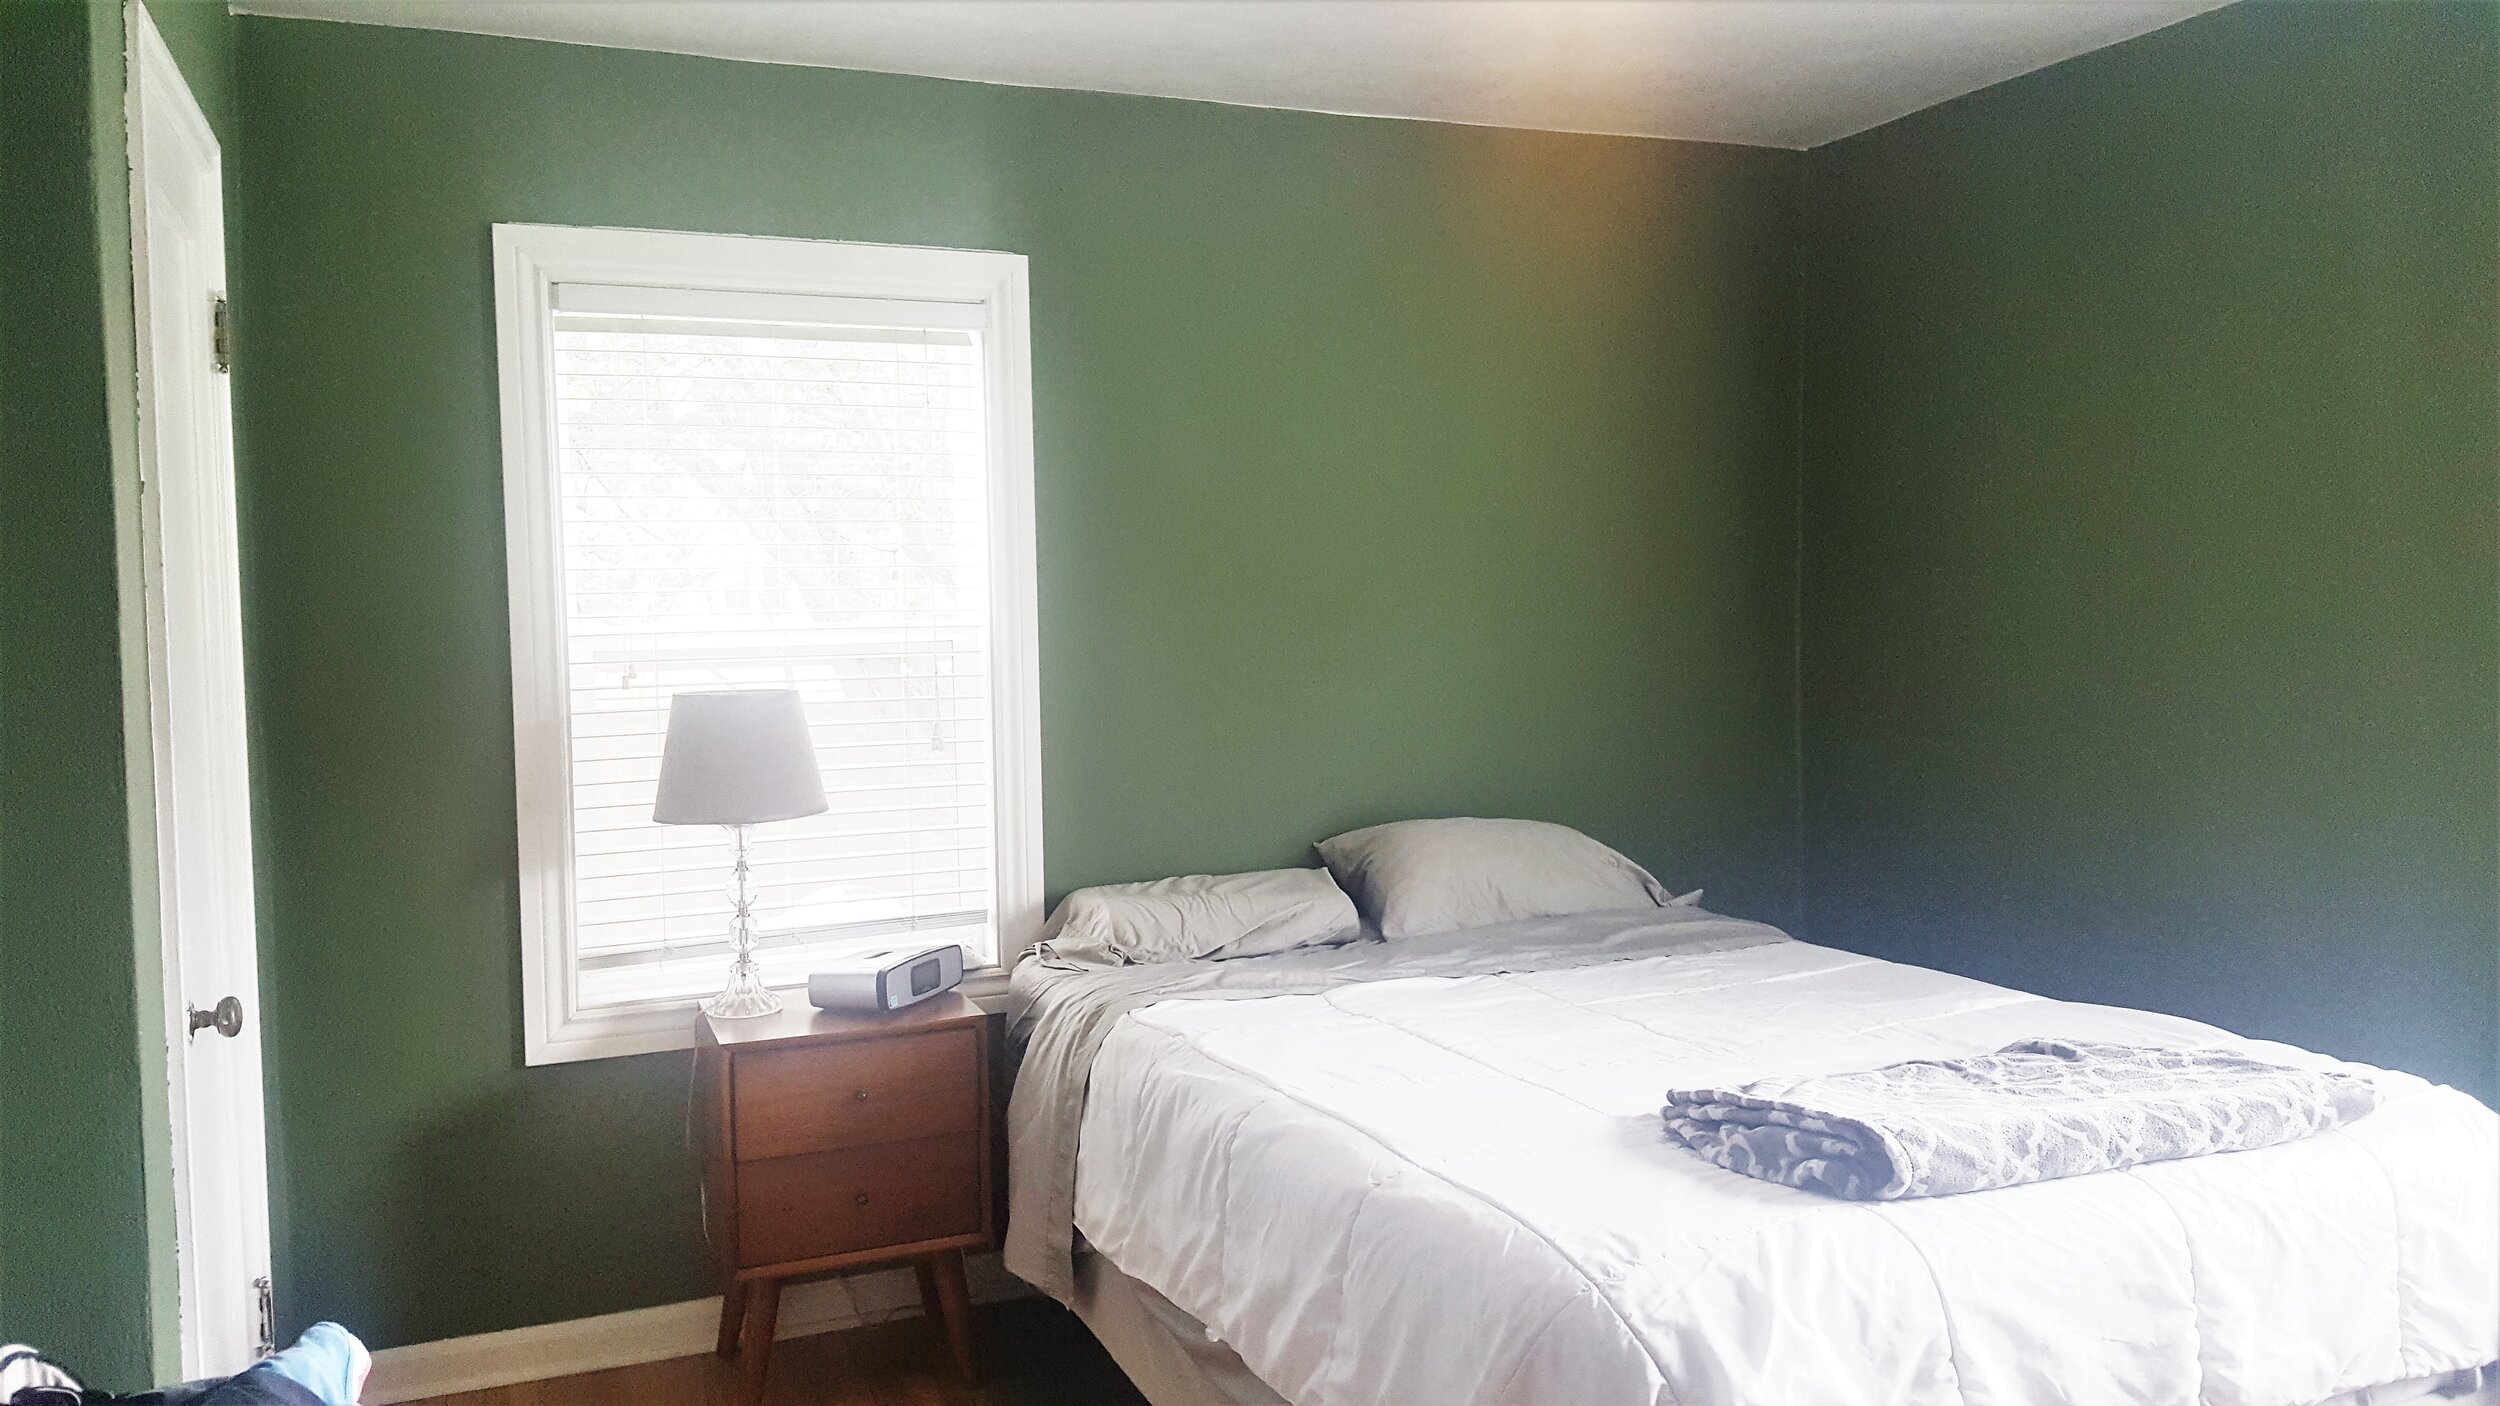 501 Livingston Bedroom Fixed.jpg